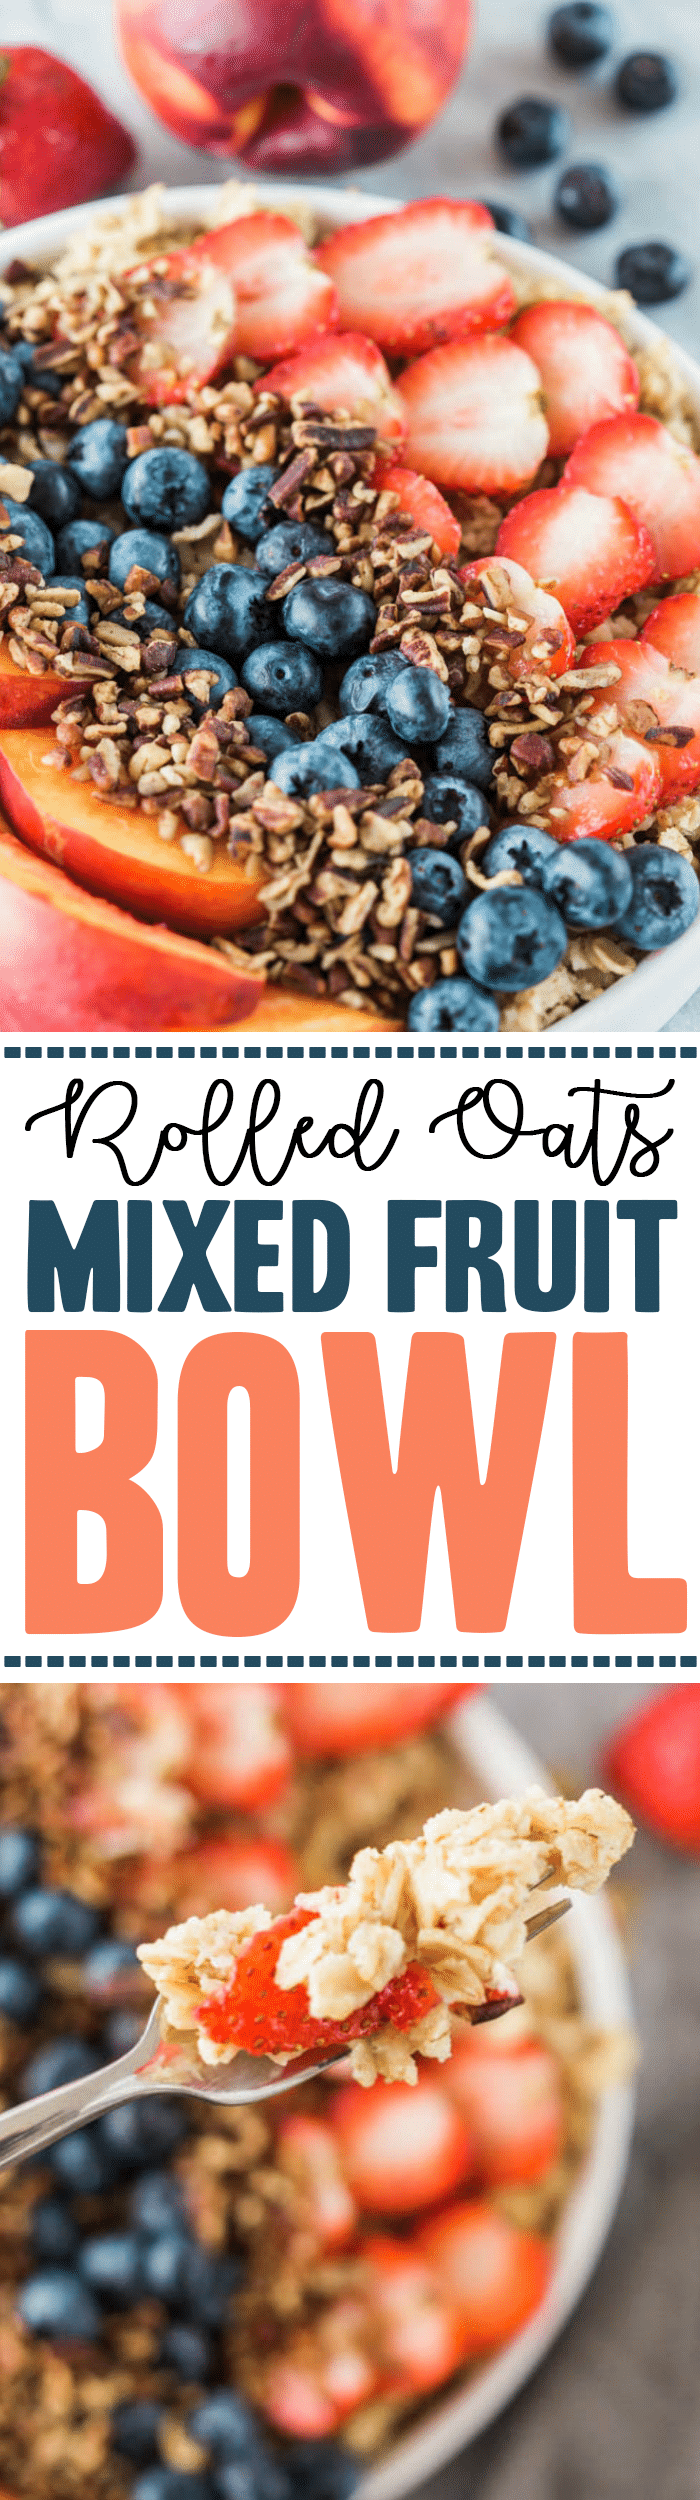 gluten free Rolled Oats Fruit and Nut Bowl - low carb breakfast bowl recipe with strawberries, blueberries, walnuts, and nectarines